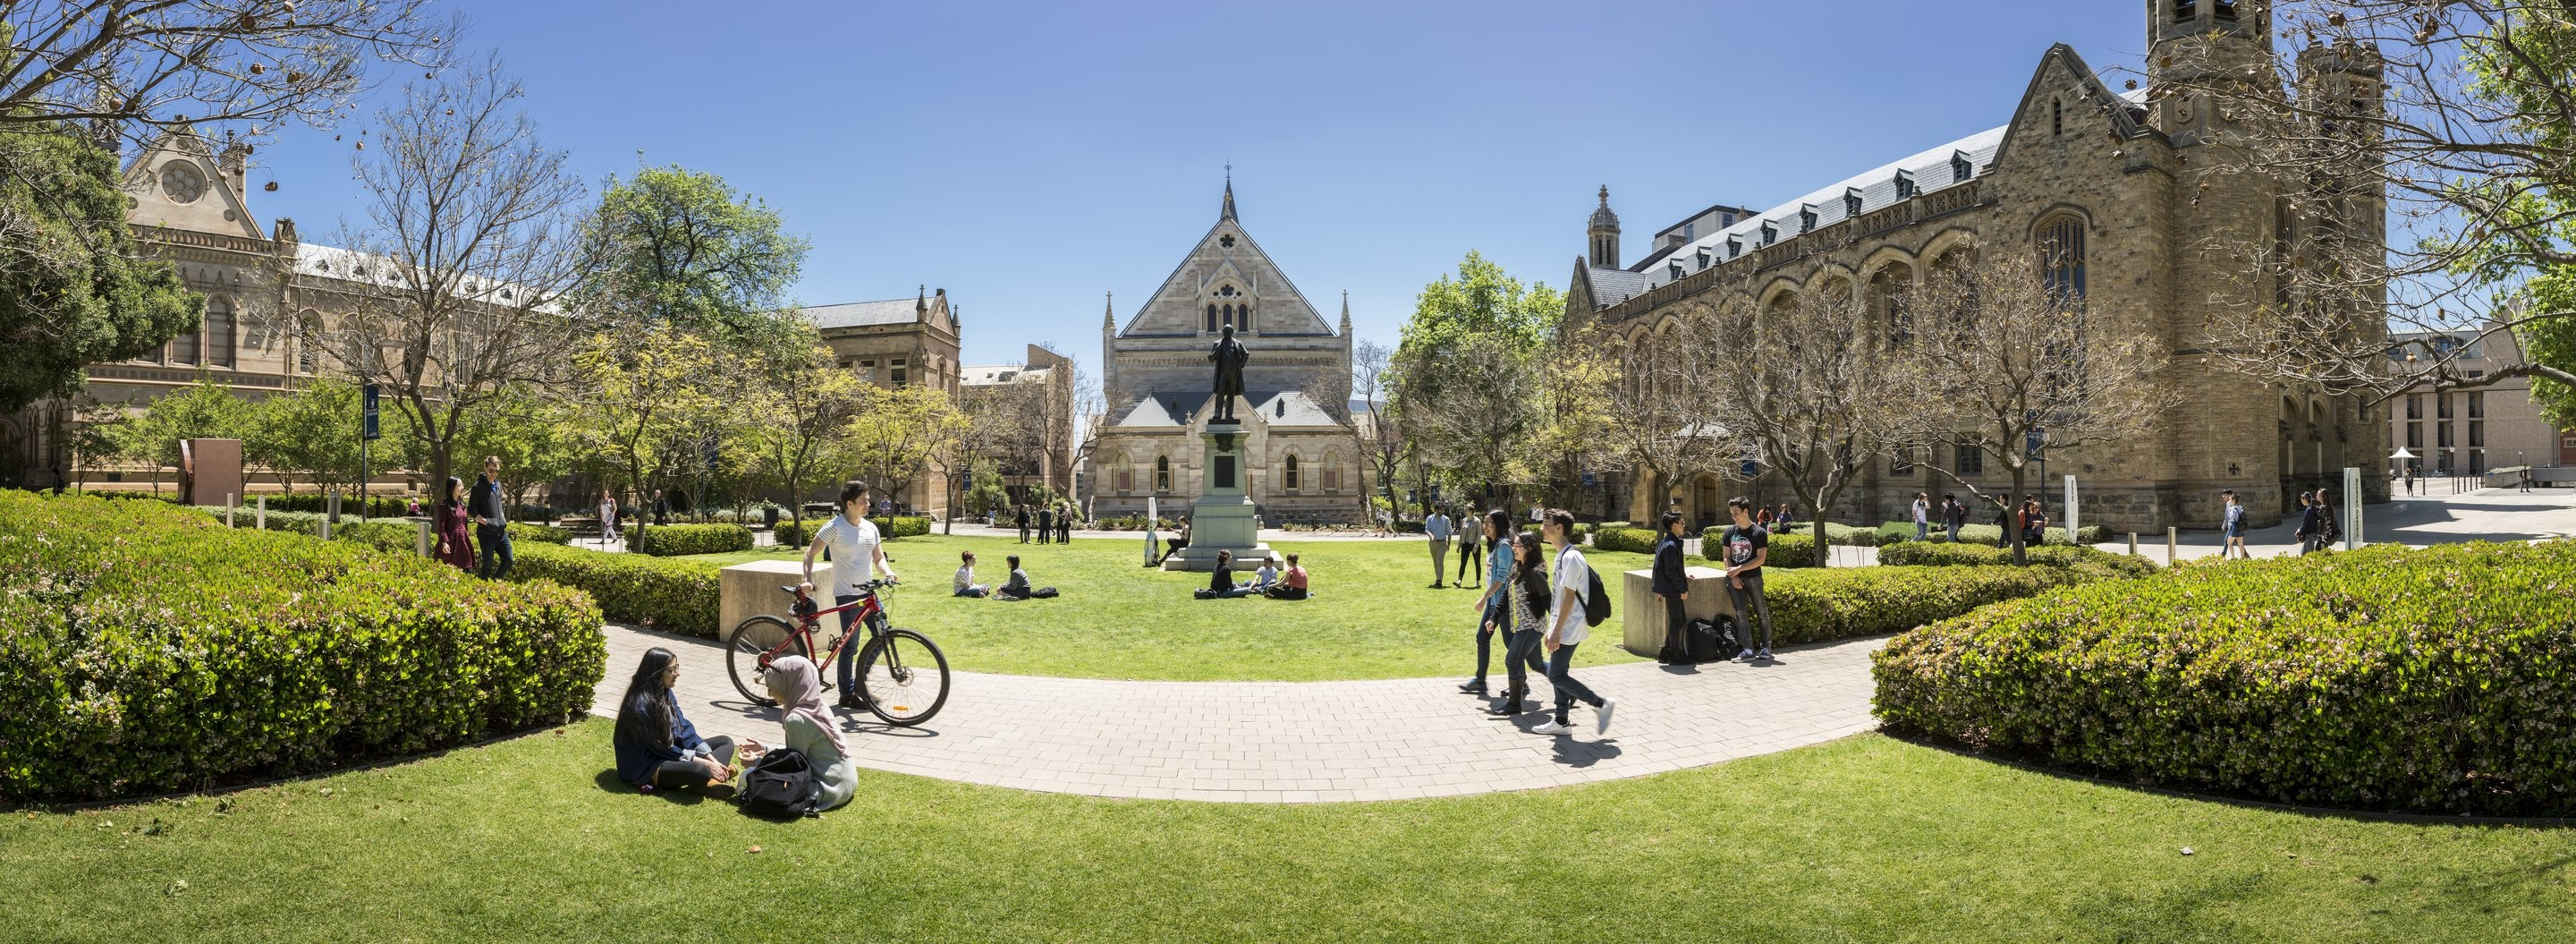 Campus and quad view with students of the University of Adelaide